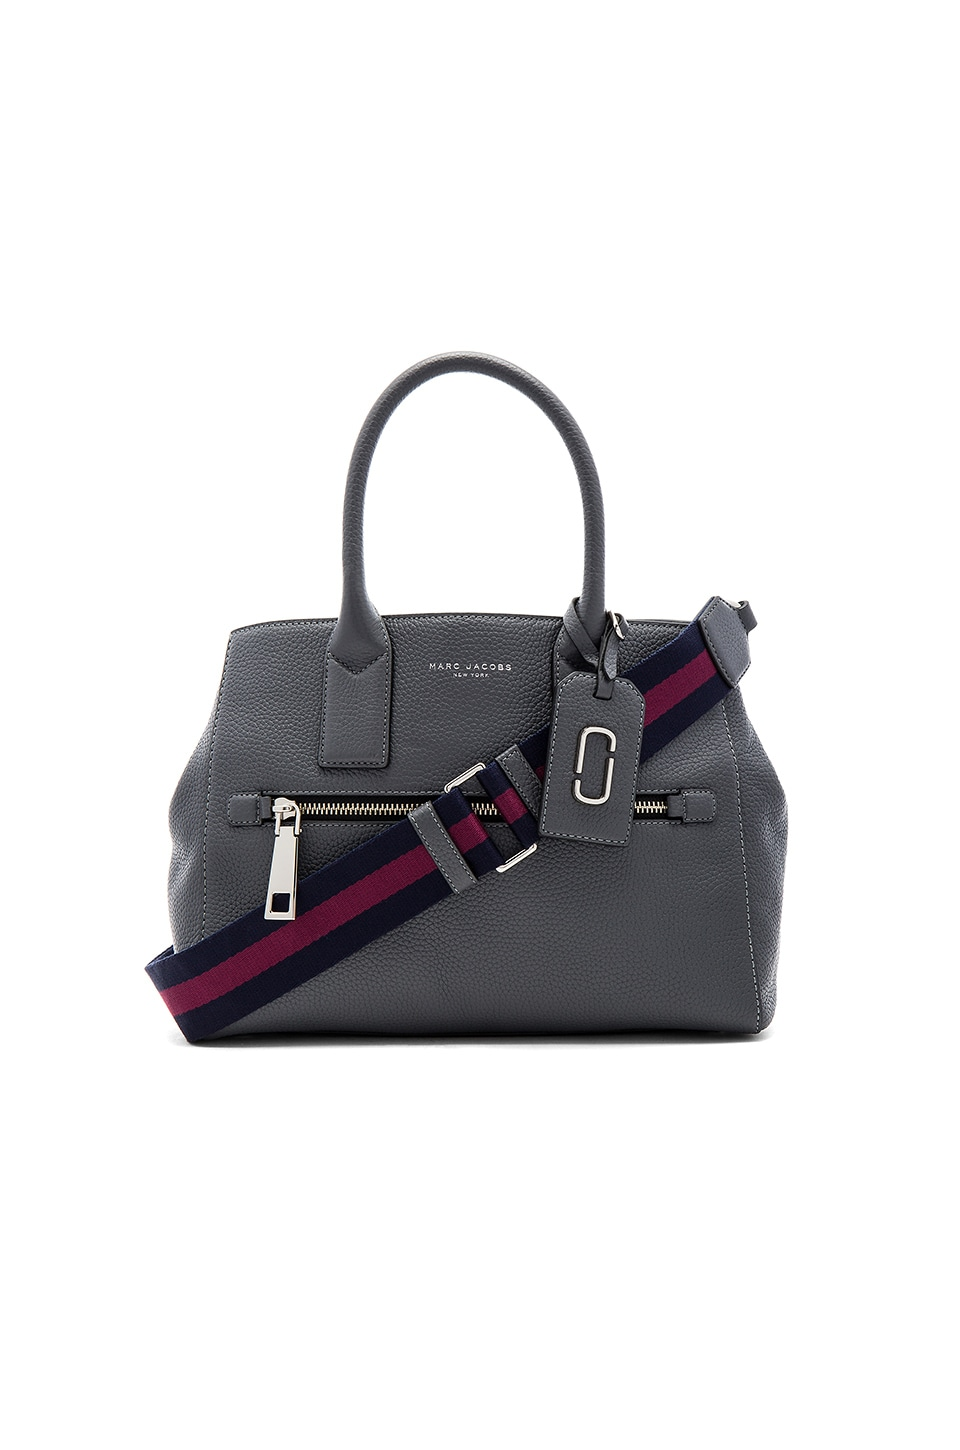 Marc Jacobs Gotham Tote Bag in Shadow